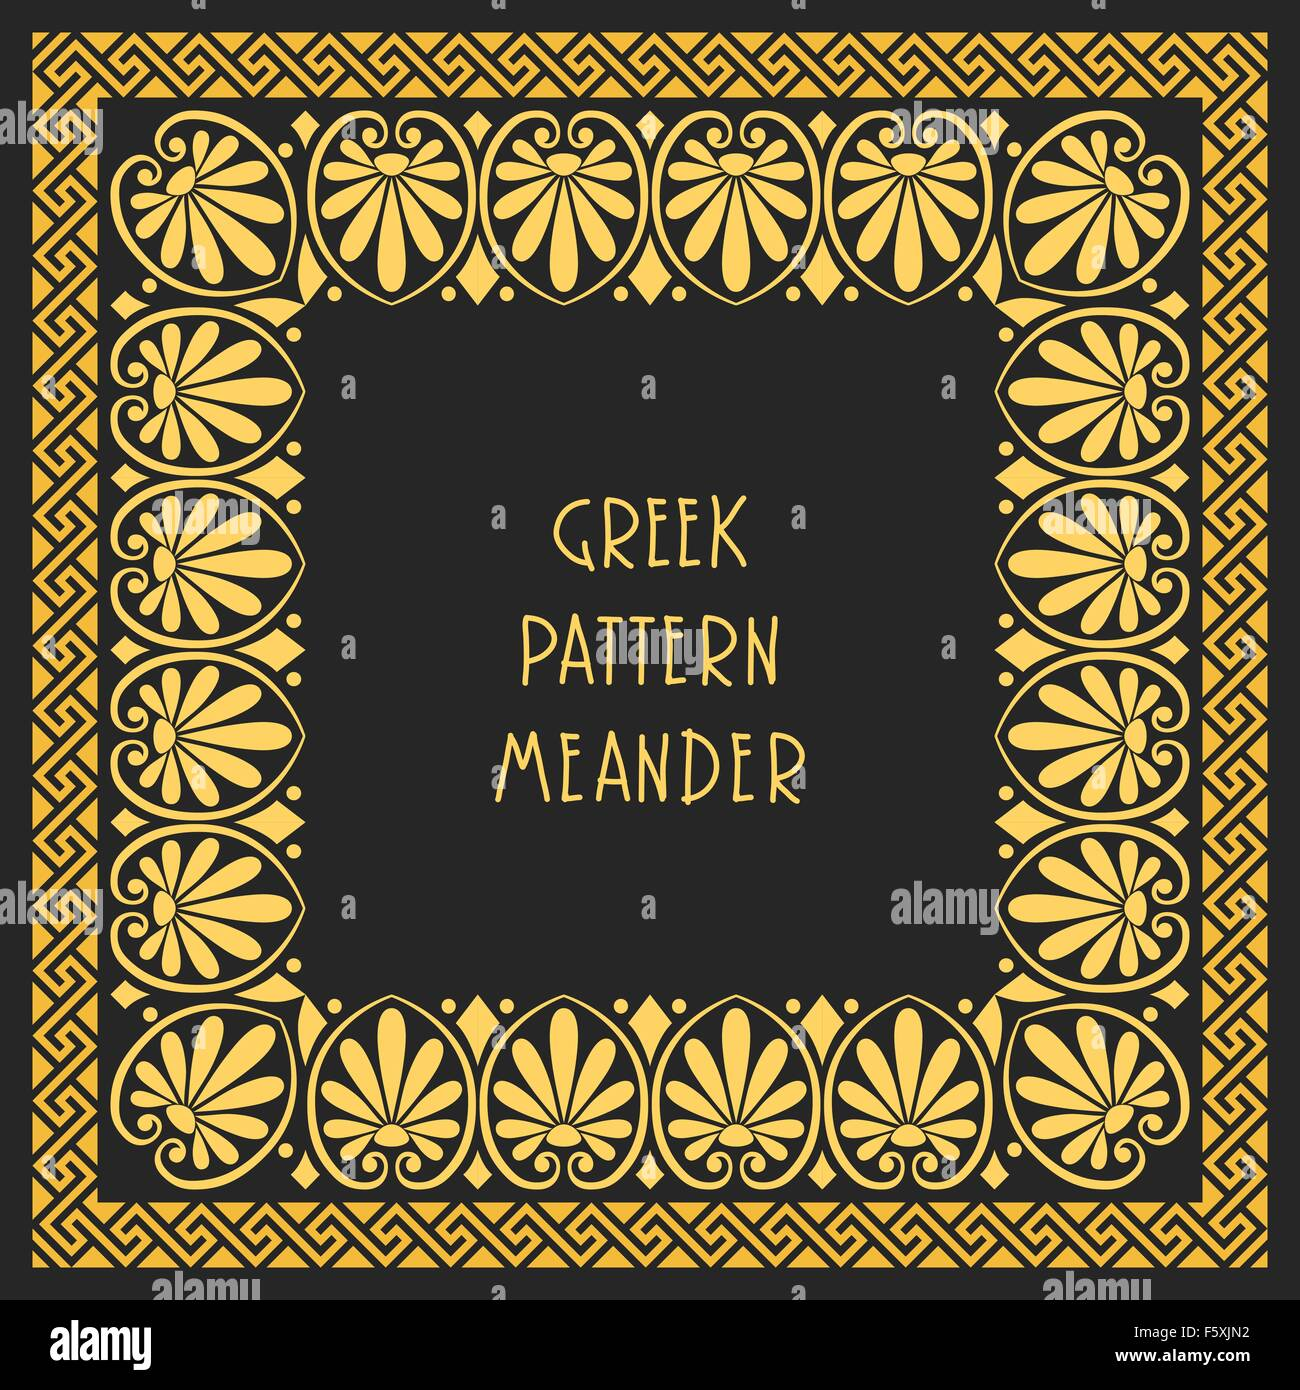 Vector frame with greek ornament meander stock vector art vector frame with greek ornament meander jeuxipadfo Gallery